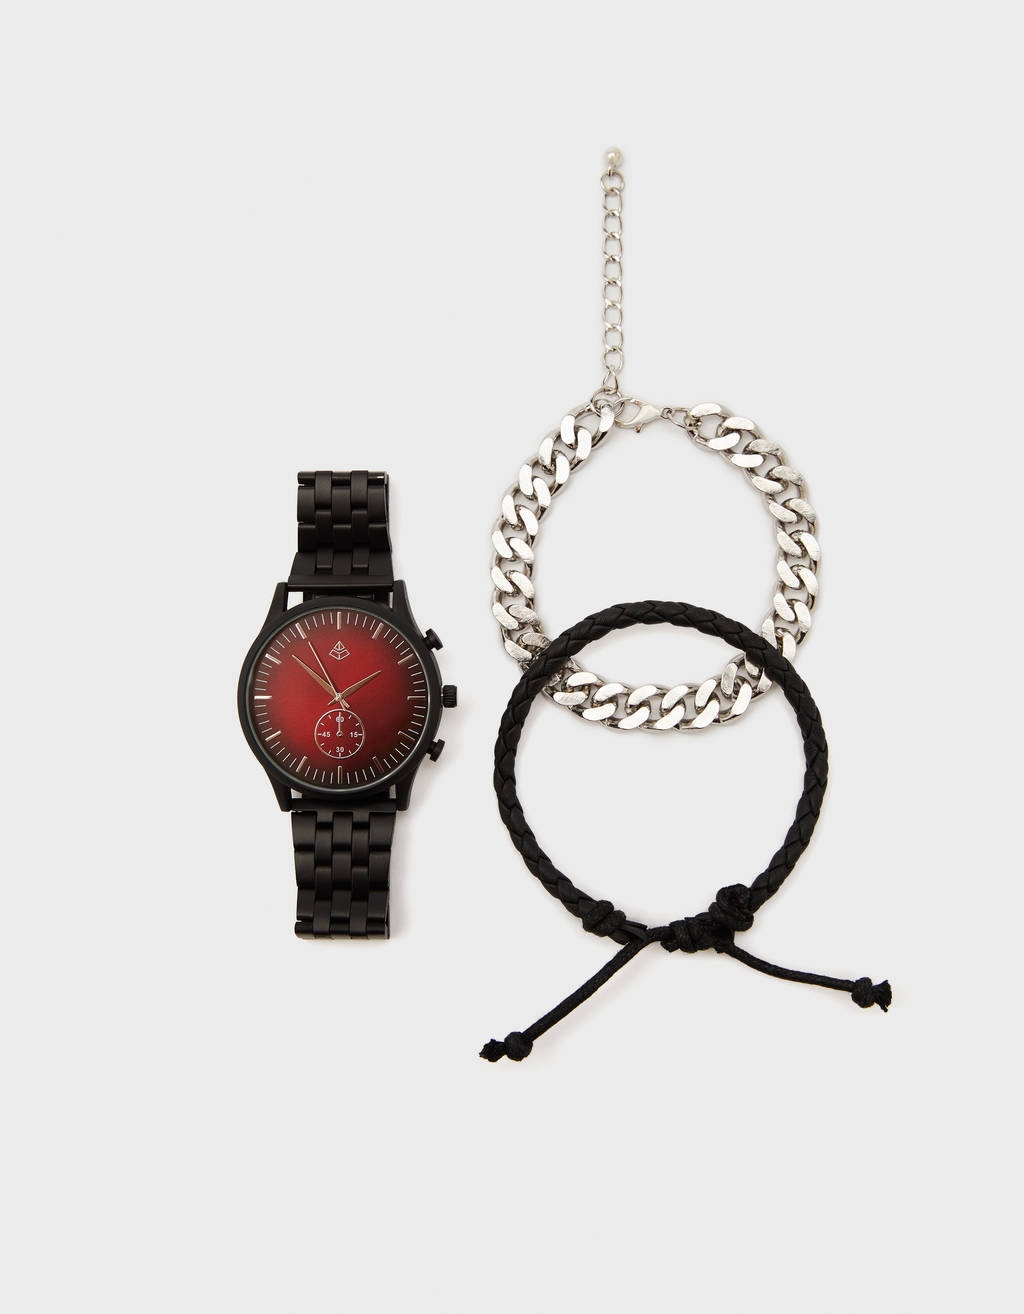 Set with watch and bracelets